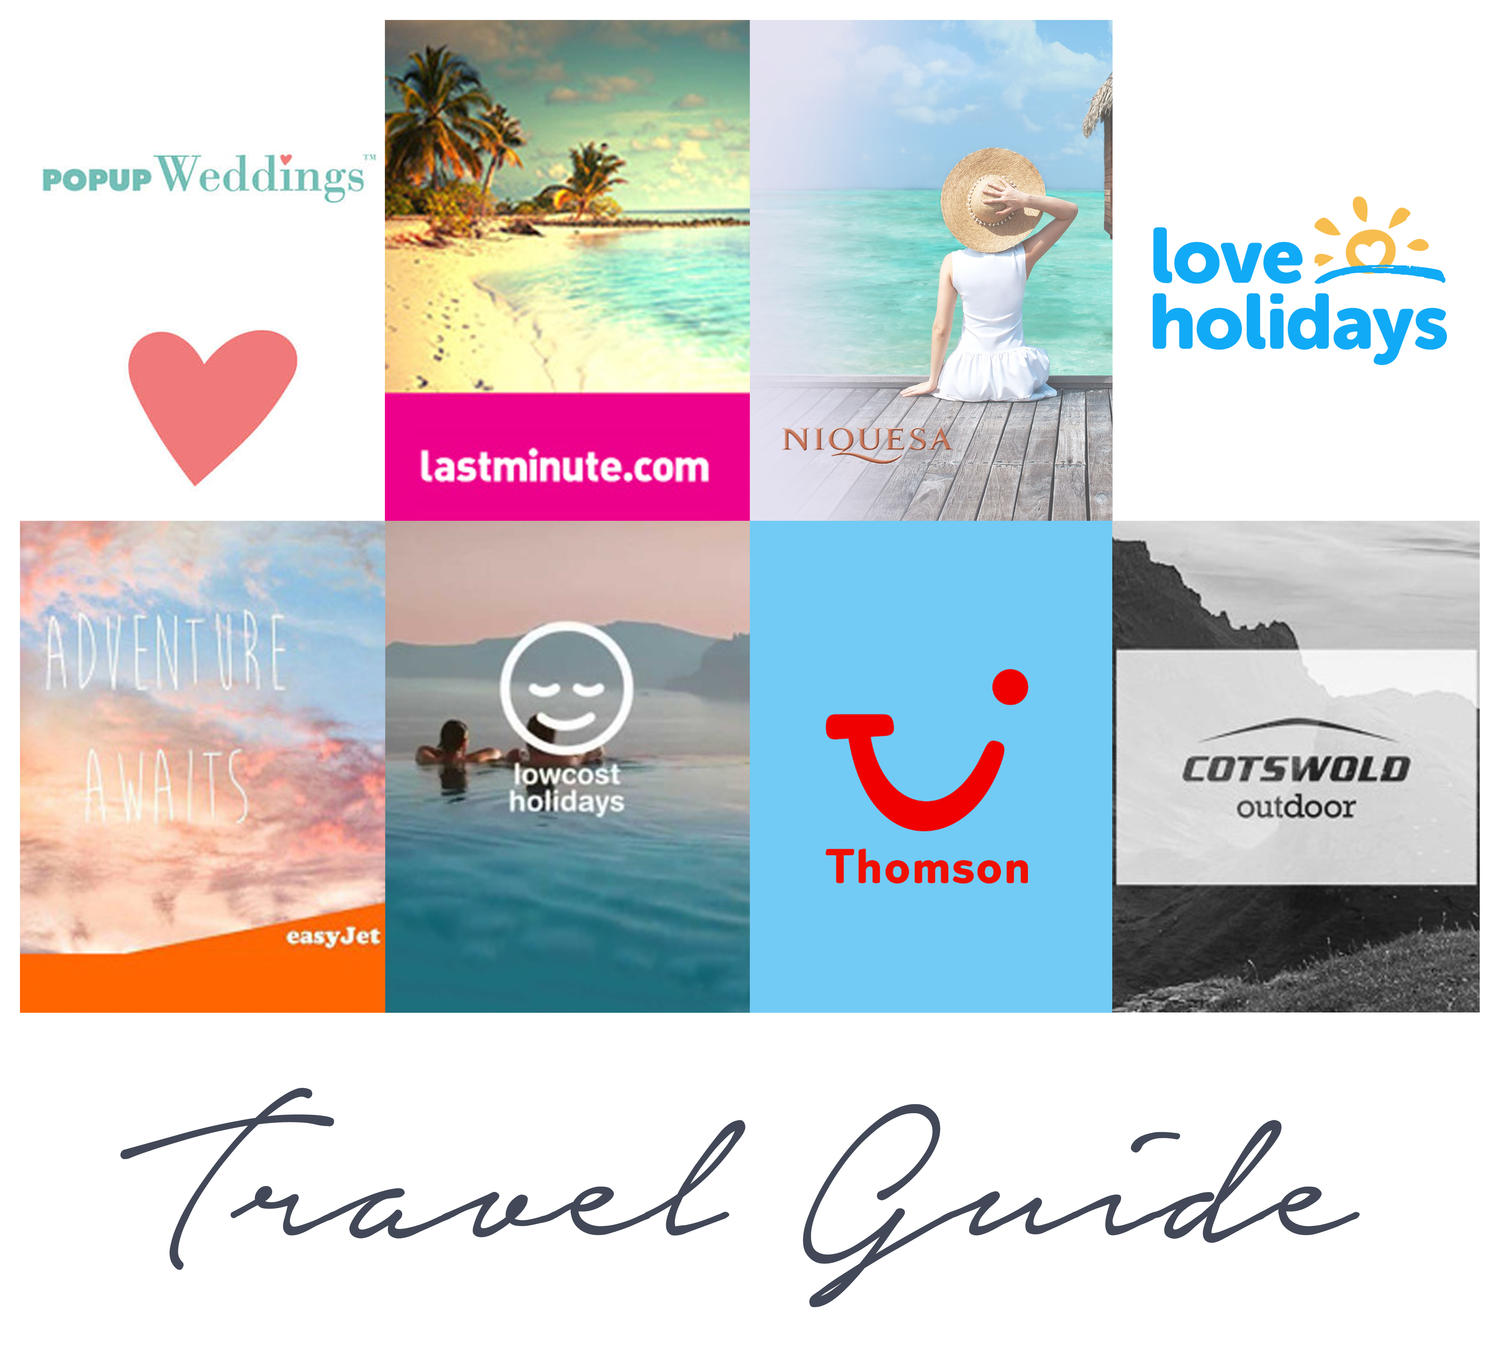 Destination Travel Guide by laurafeasey - 104526